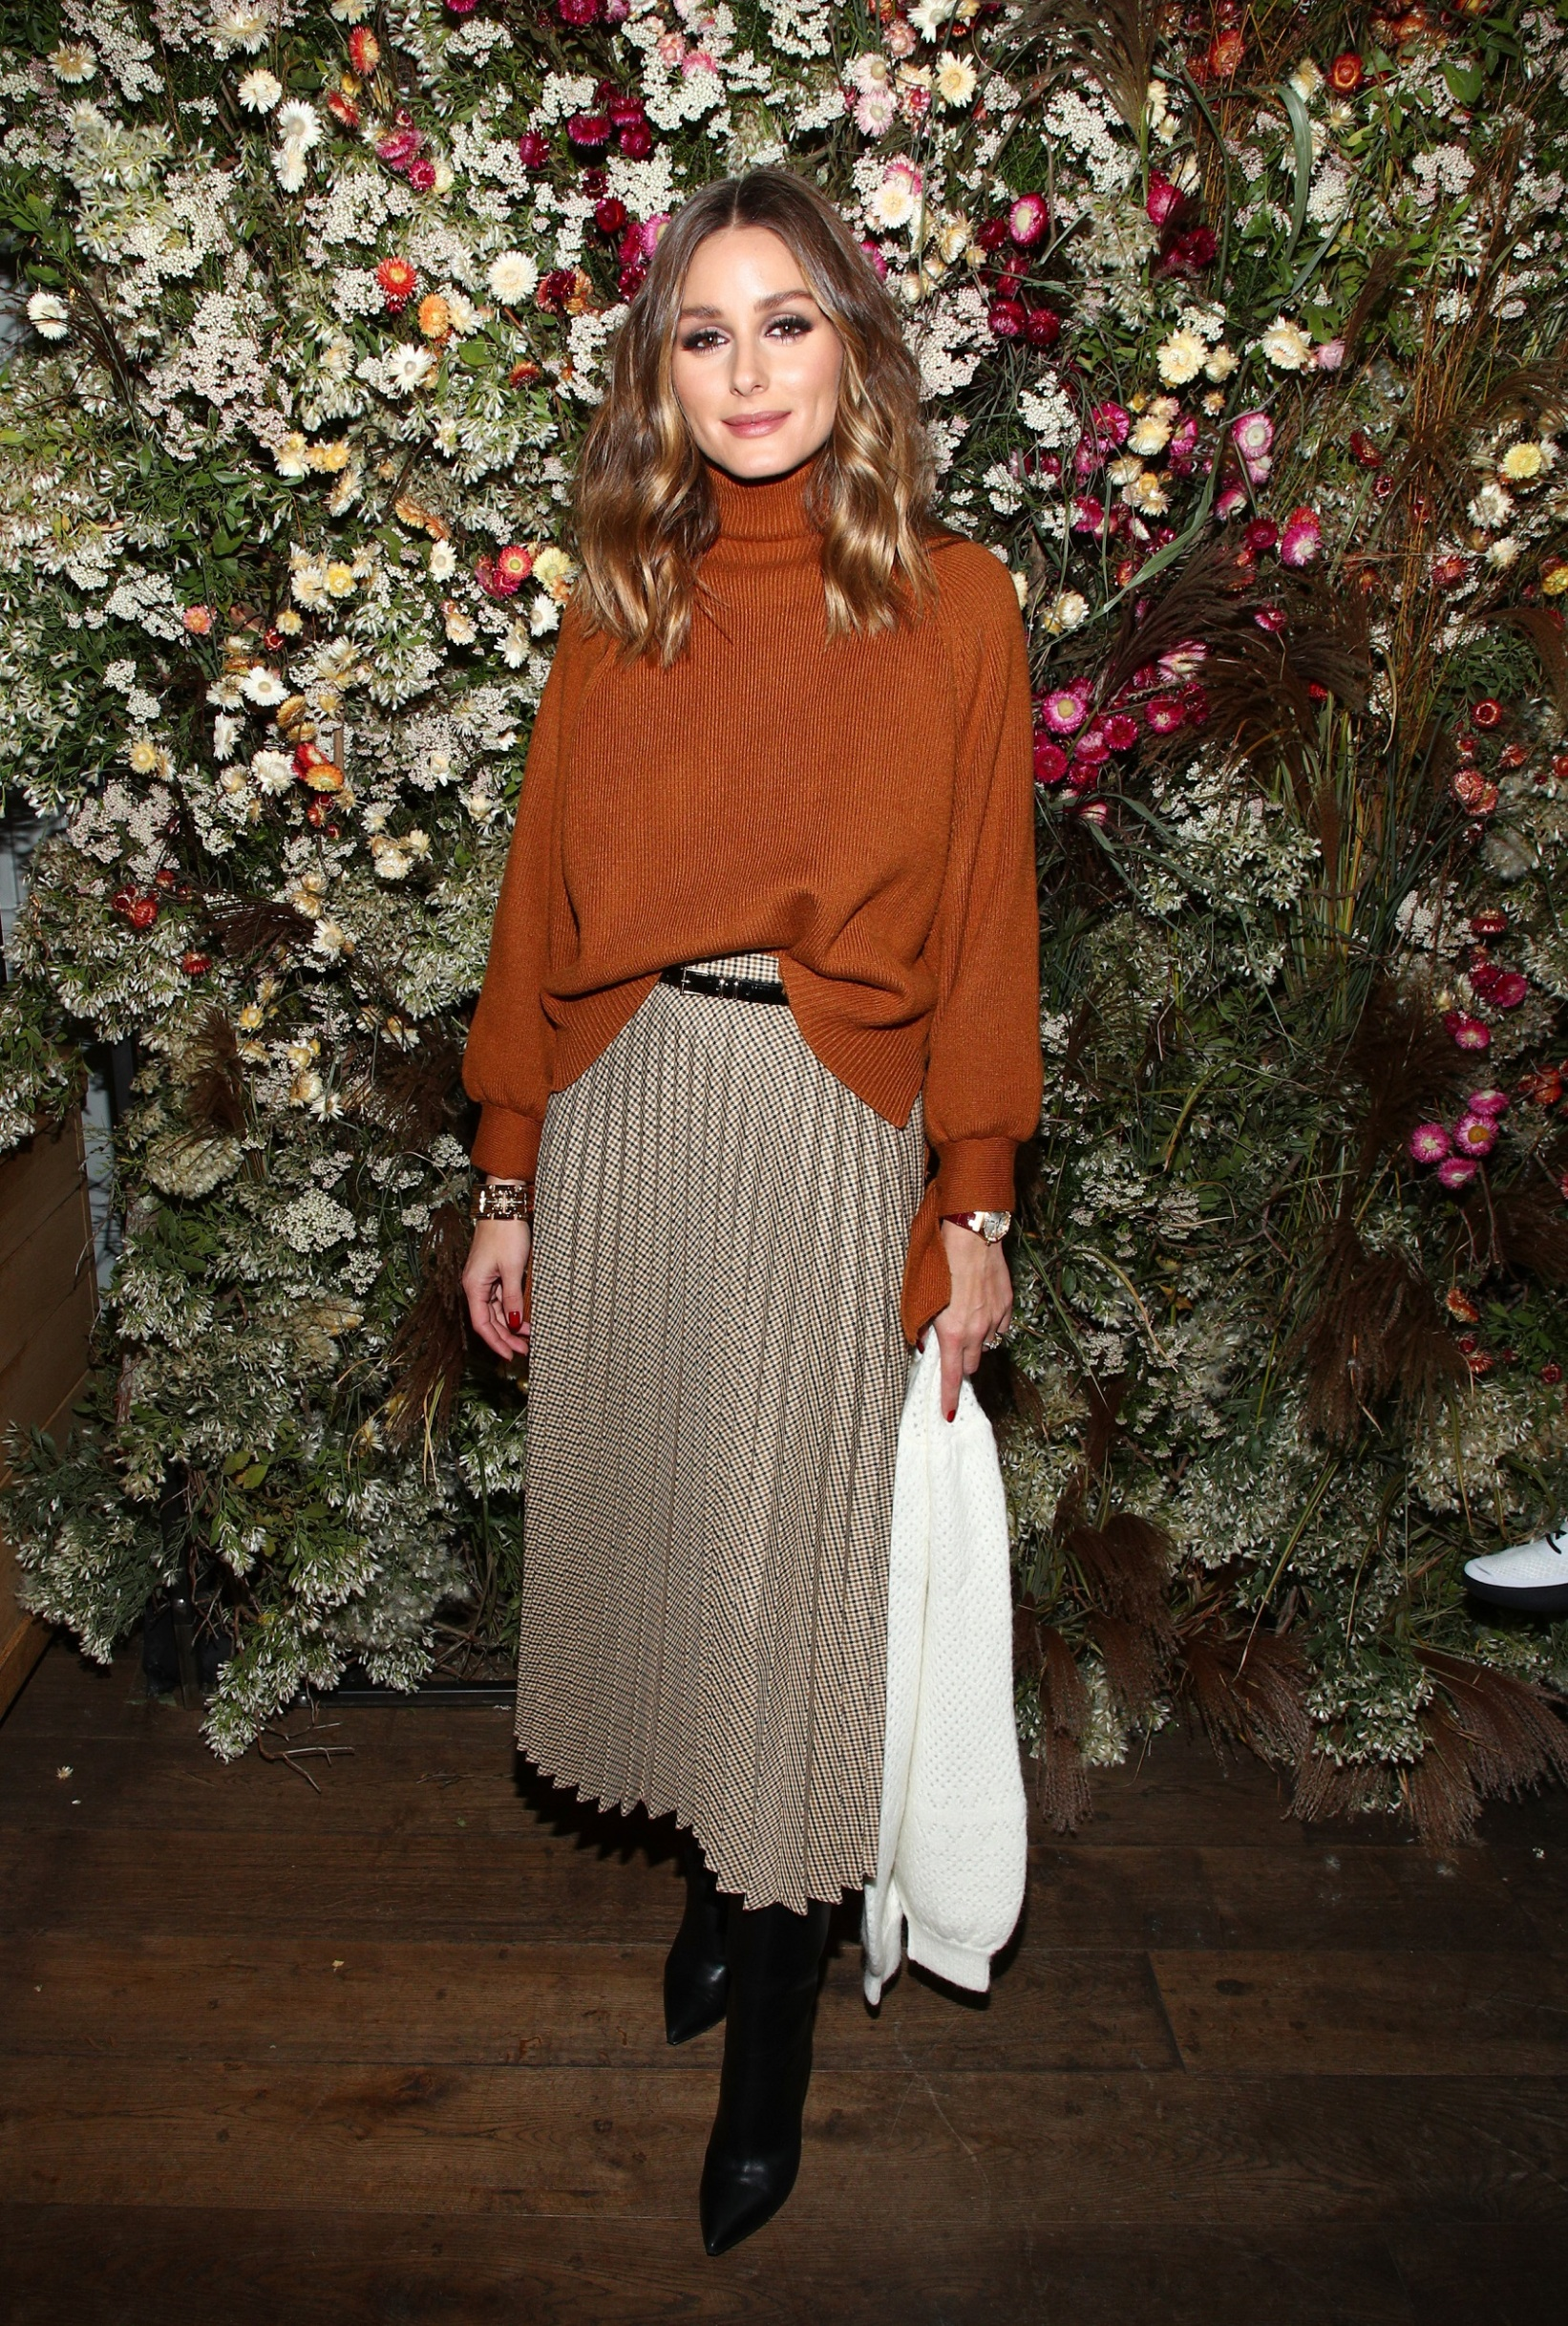 NEW YORK, NEW YORK - OCTOBER 17: Olivia Palermo attends Talita von Furstenberg Celebrates Her Second Collection on October 17, 2019 at La Mercerie in New York City. (Photo by Astrid Stawiarz/Getty Images for TVF for DVF)